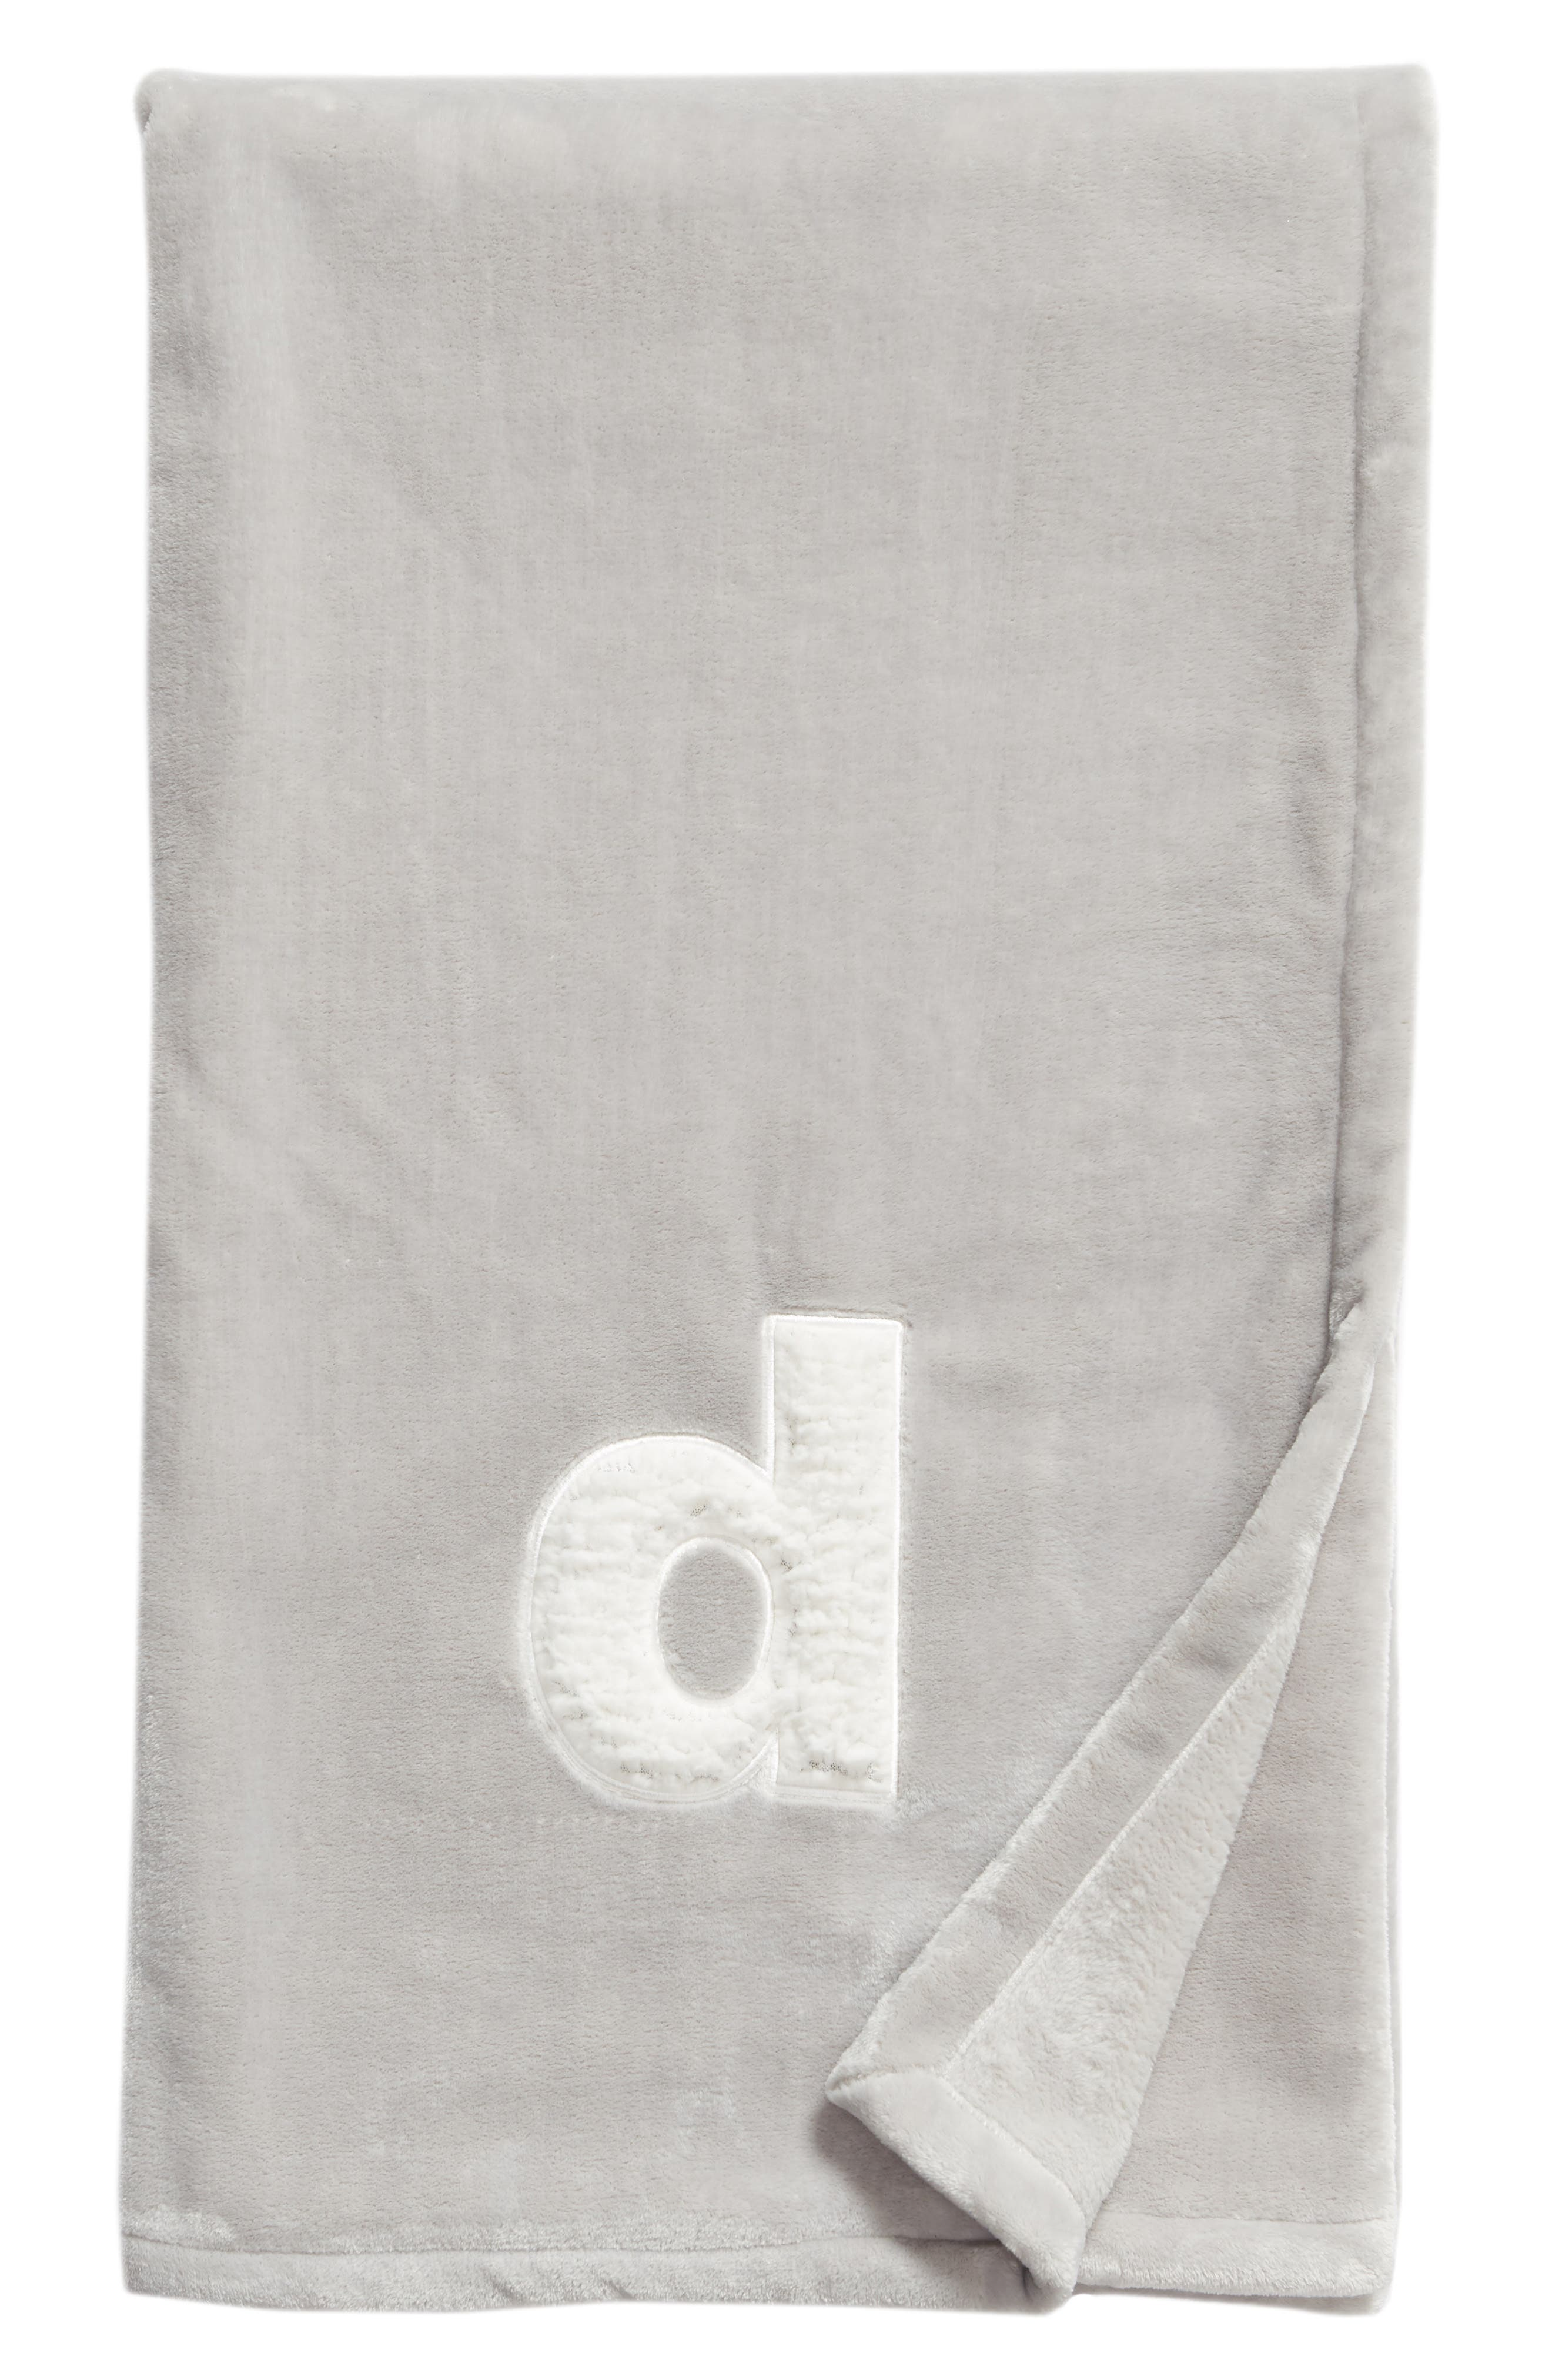 Faux Shearling Monogrammed Plush Throw Blanket,                             Main thumbnail 1, color,                             GREY-D